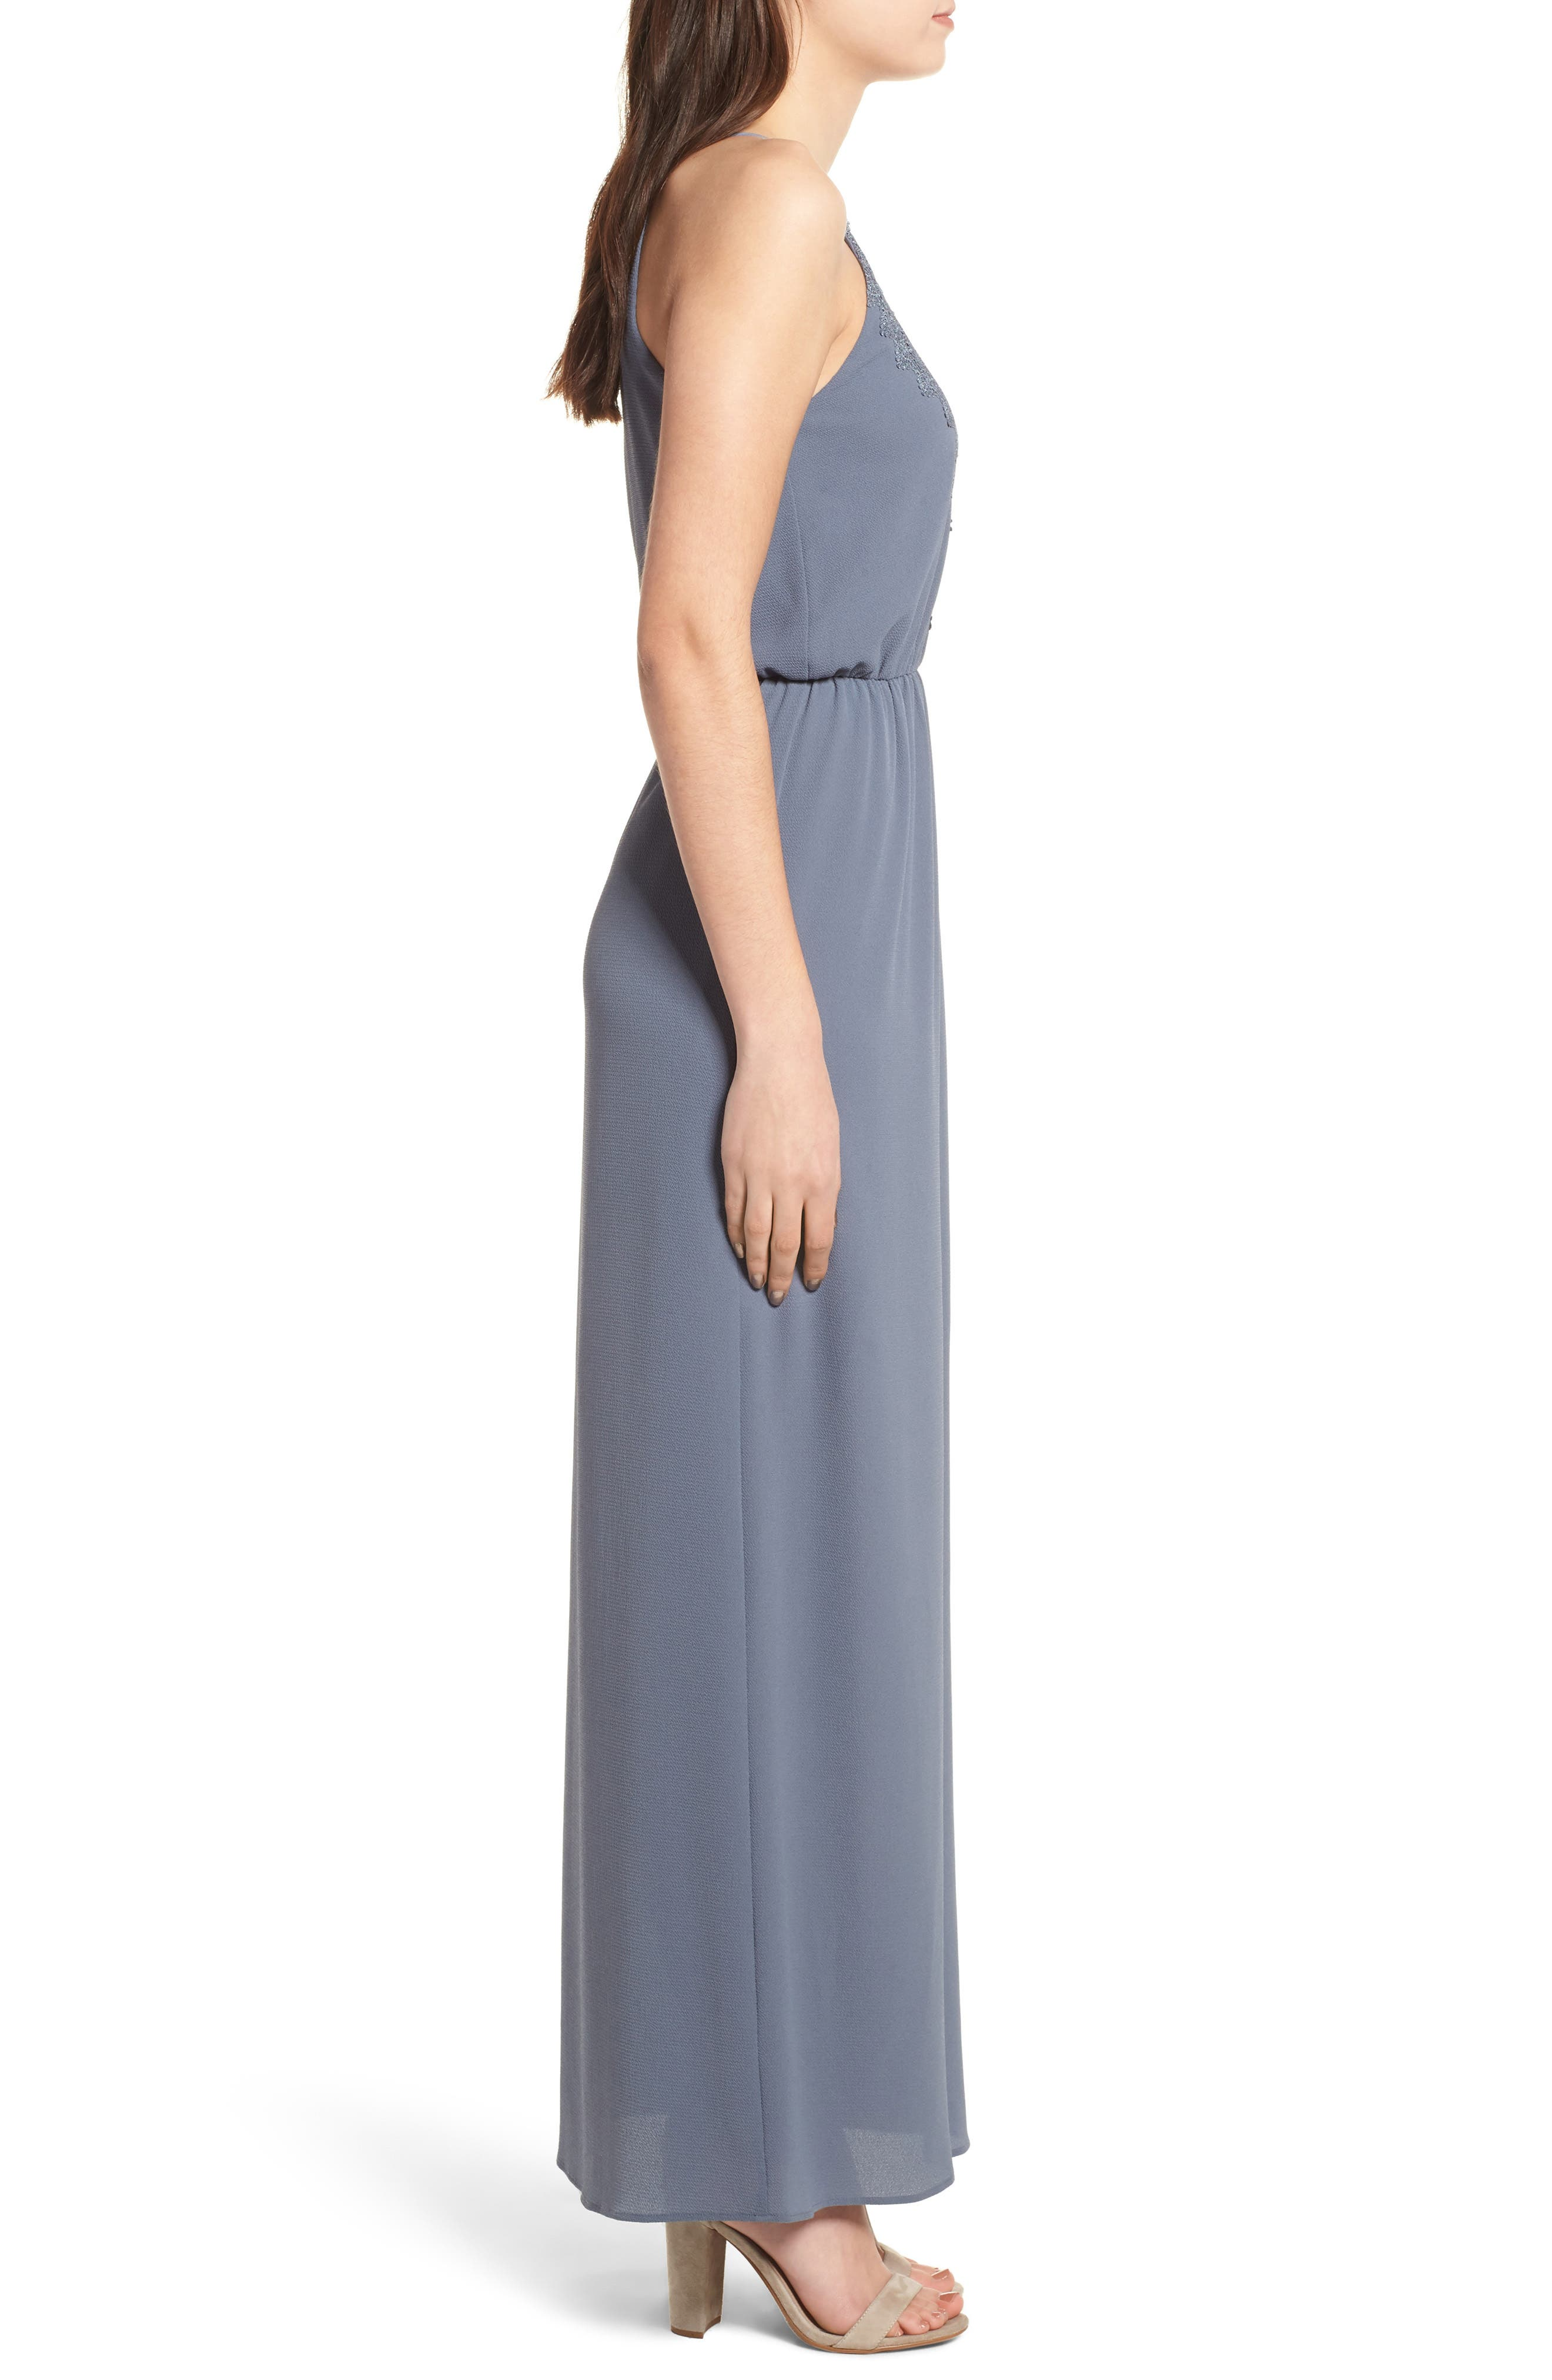 Posie Maxi Dress,                             Alternate thumbnail 3, color,                             027